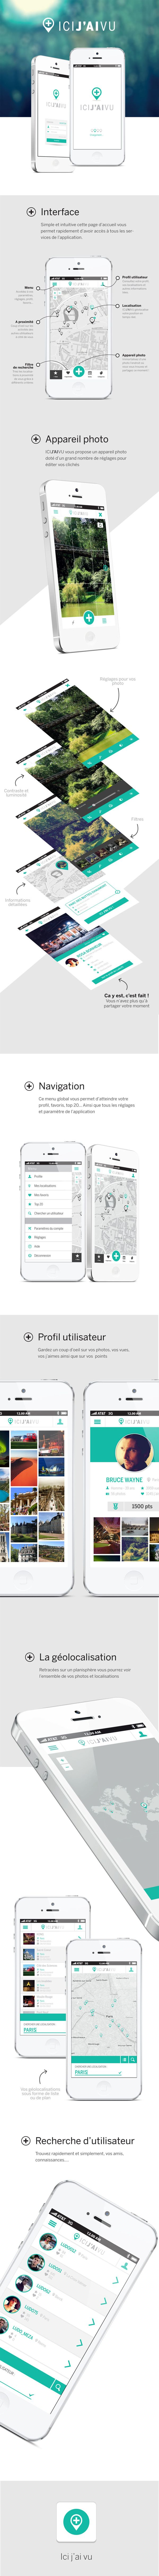 Application ICI J'AI VU by Nathalie Troucelier, via Behance #mobile #ui #uidesign #uxdesign #mobileappui #UIUX#webdesign #color #photography #typography #ResponsiveDesign #Web #UI #UX #WordPress #Resposive Design #Website #Graphics